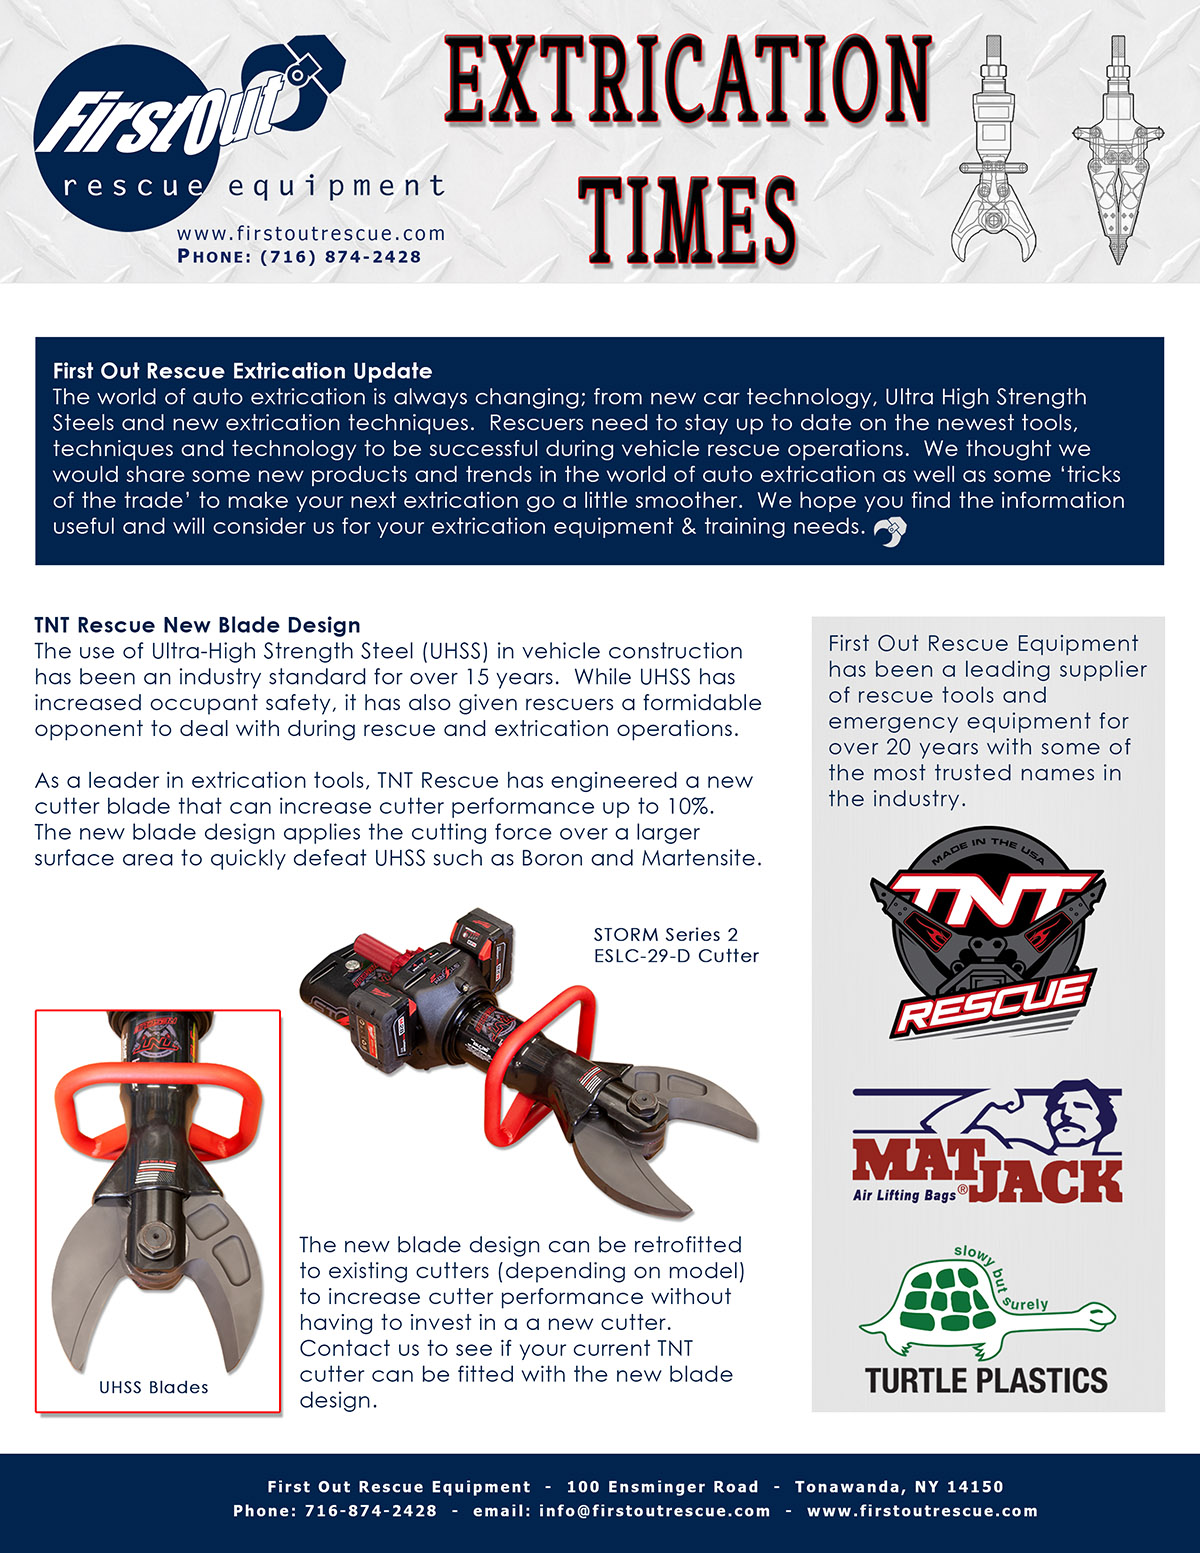 September 2018 First Out Rescue Equipment News Letter